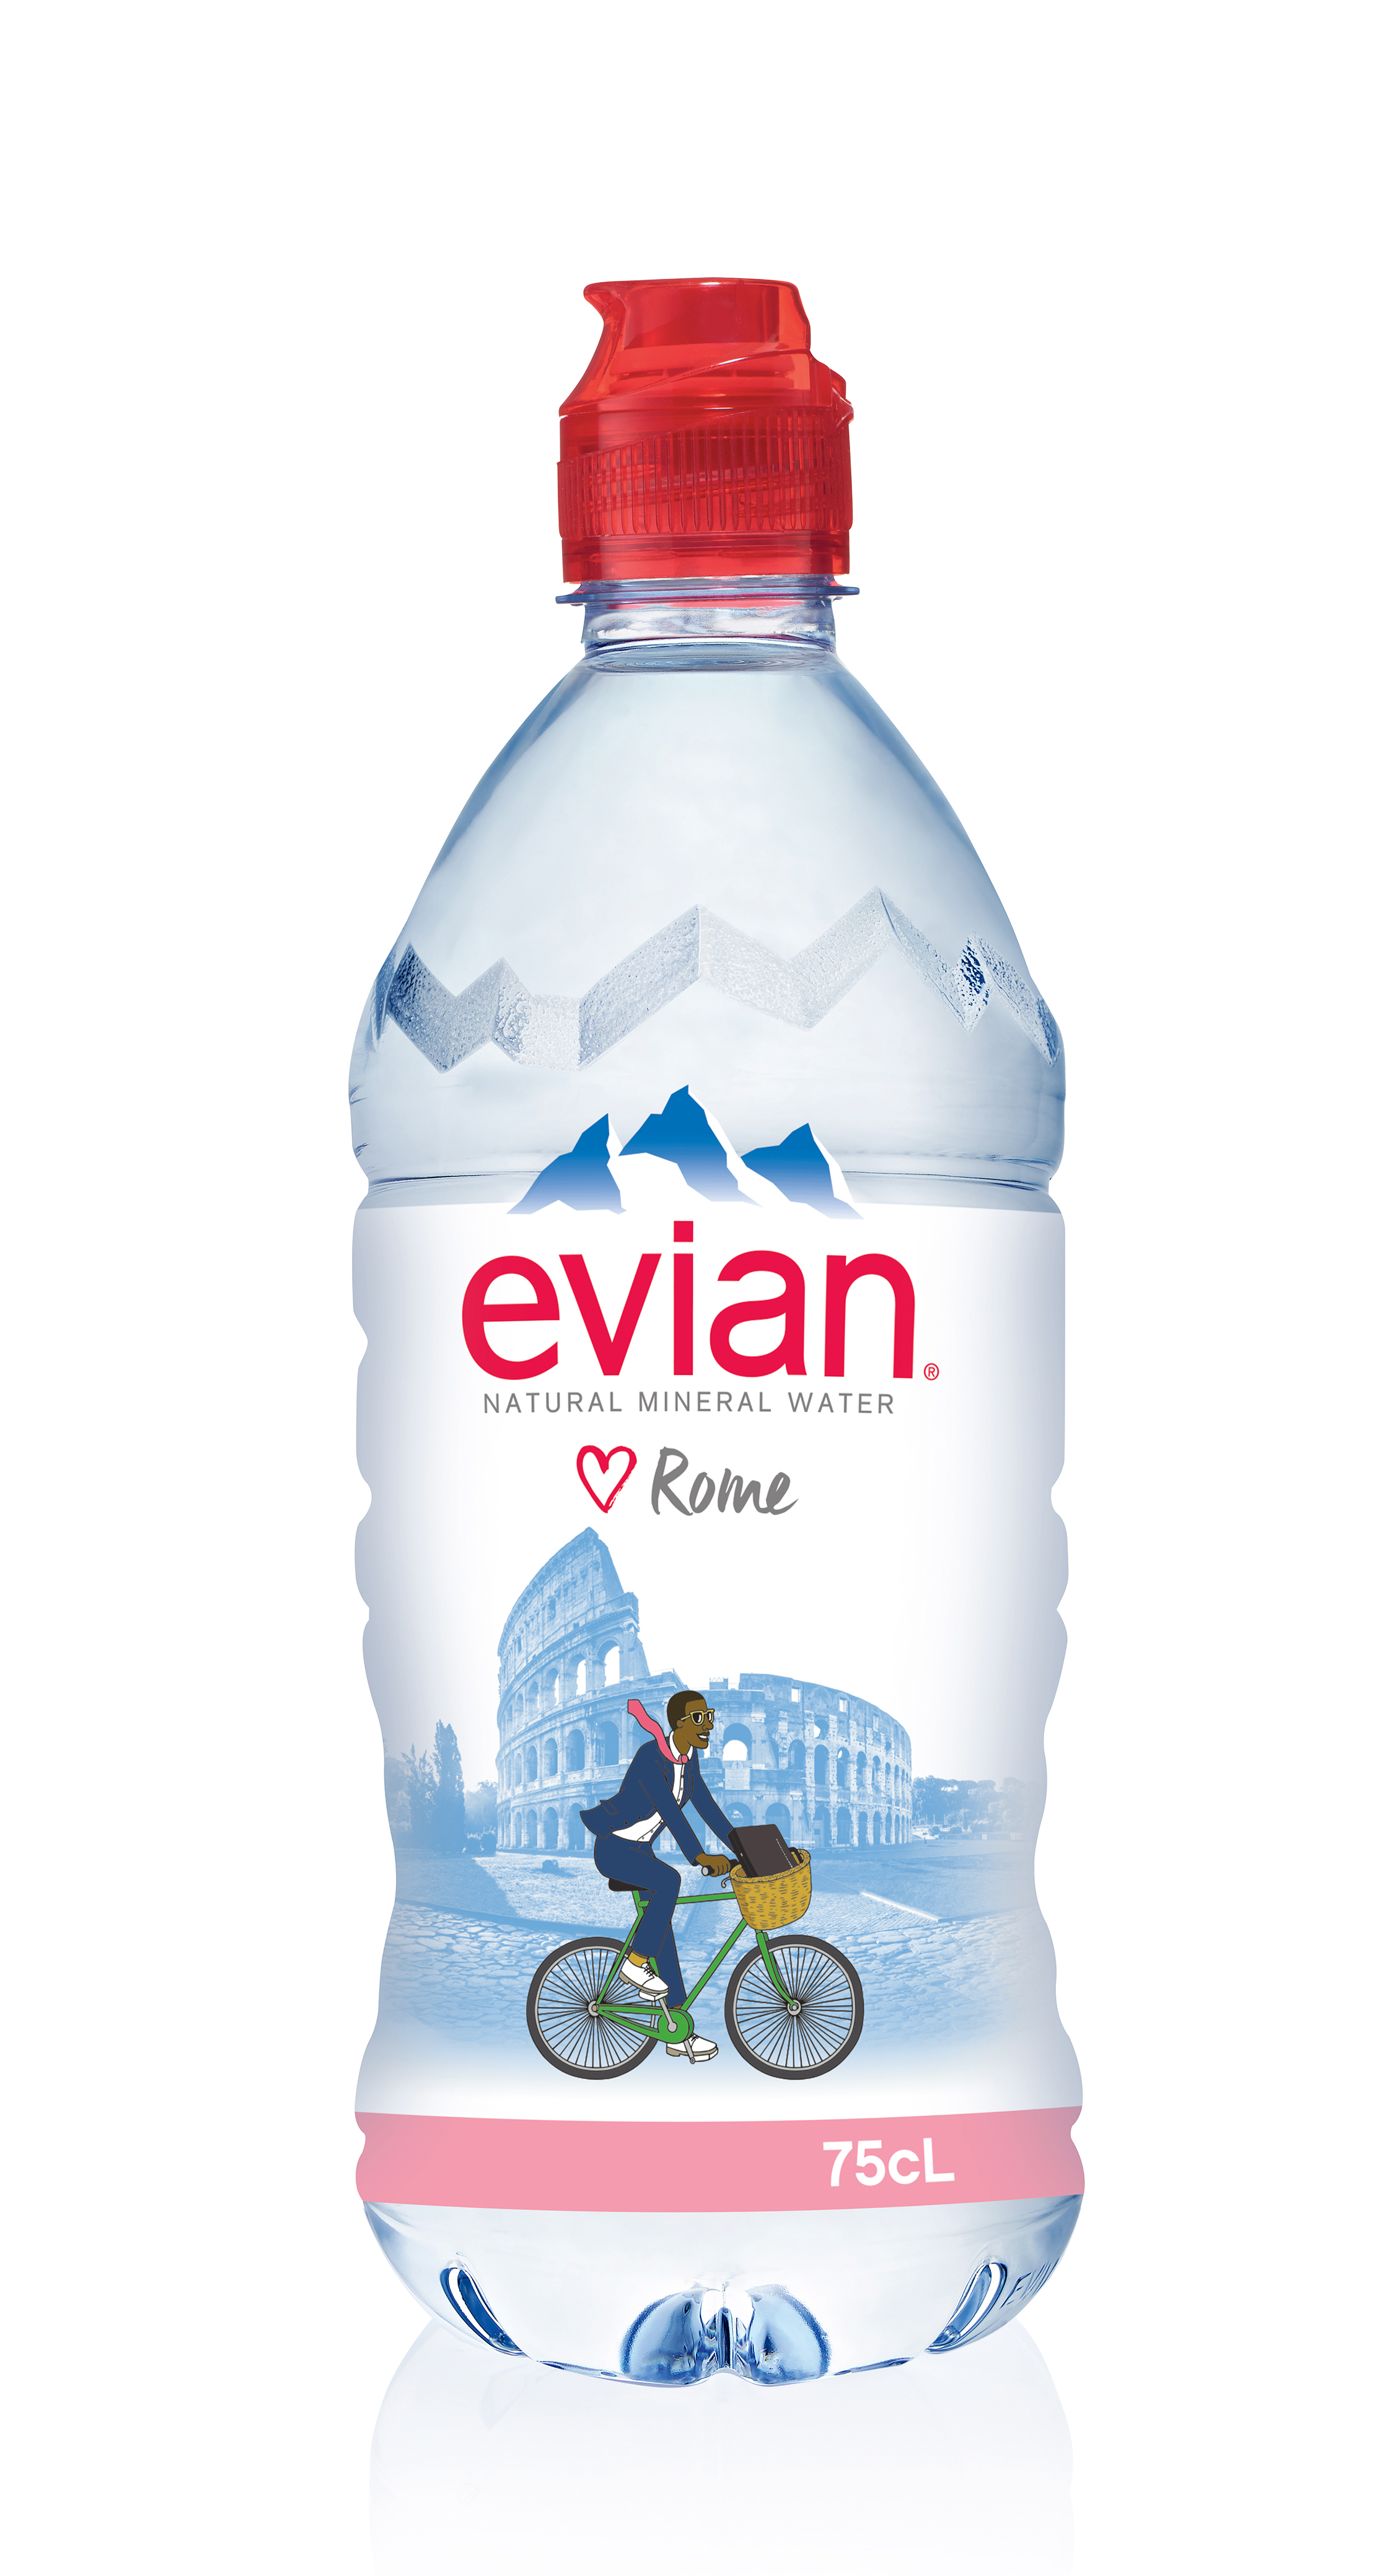 Evian_Cities_Bouteille_MAC_Europe75CL-HD_Rome_02.jpg